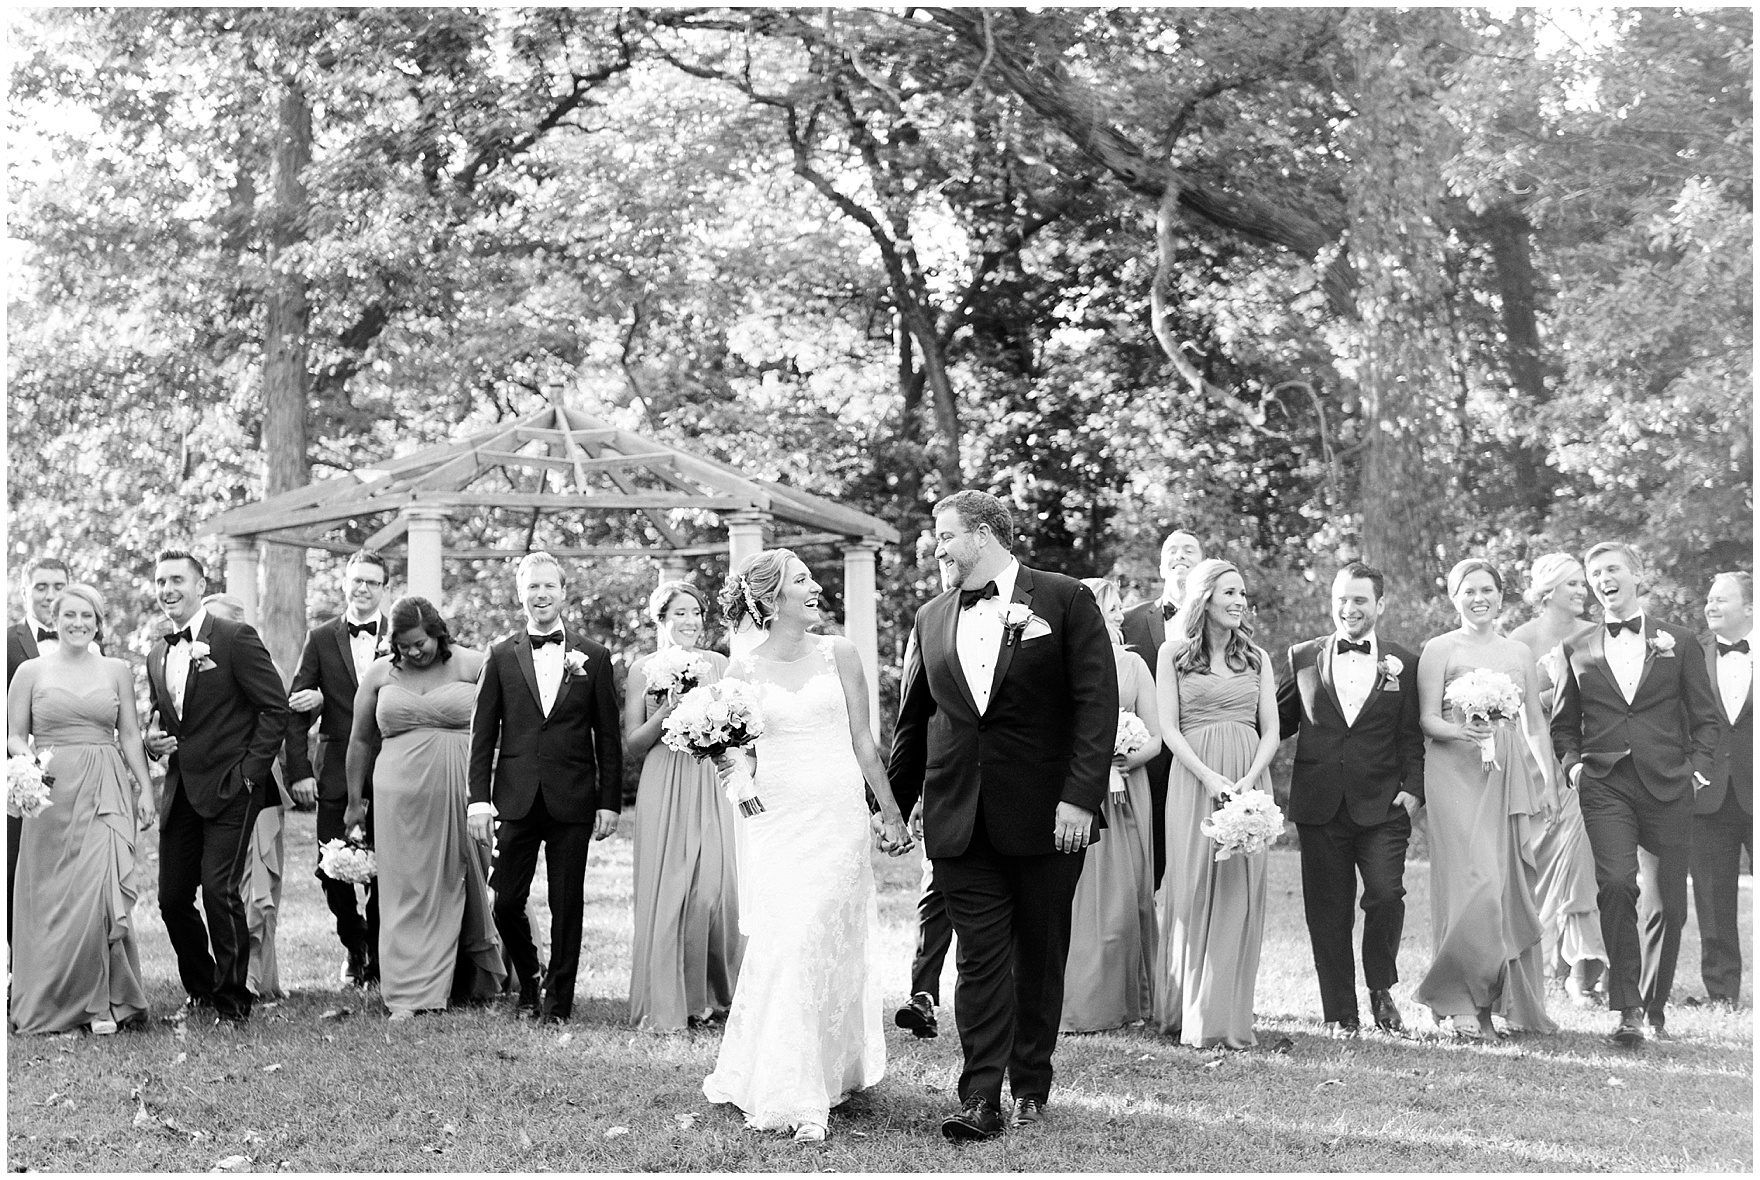 The bridal party poses for portraits during a Glen Club Glenview Illinois wedding.